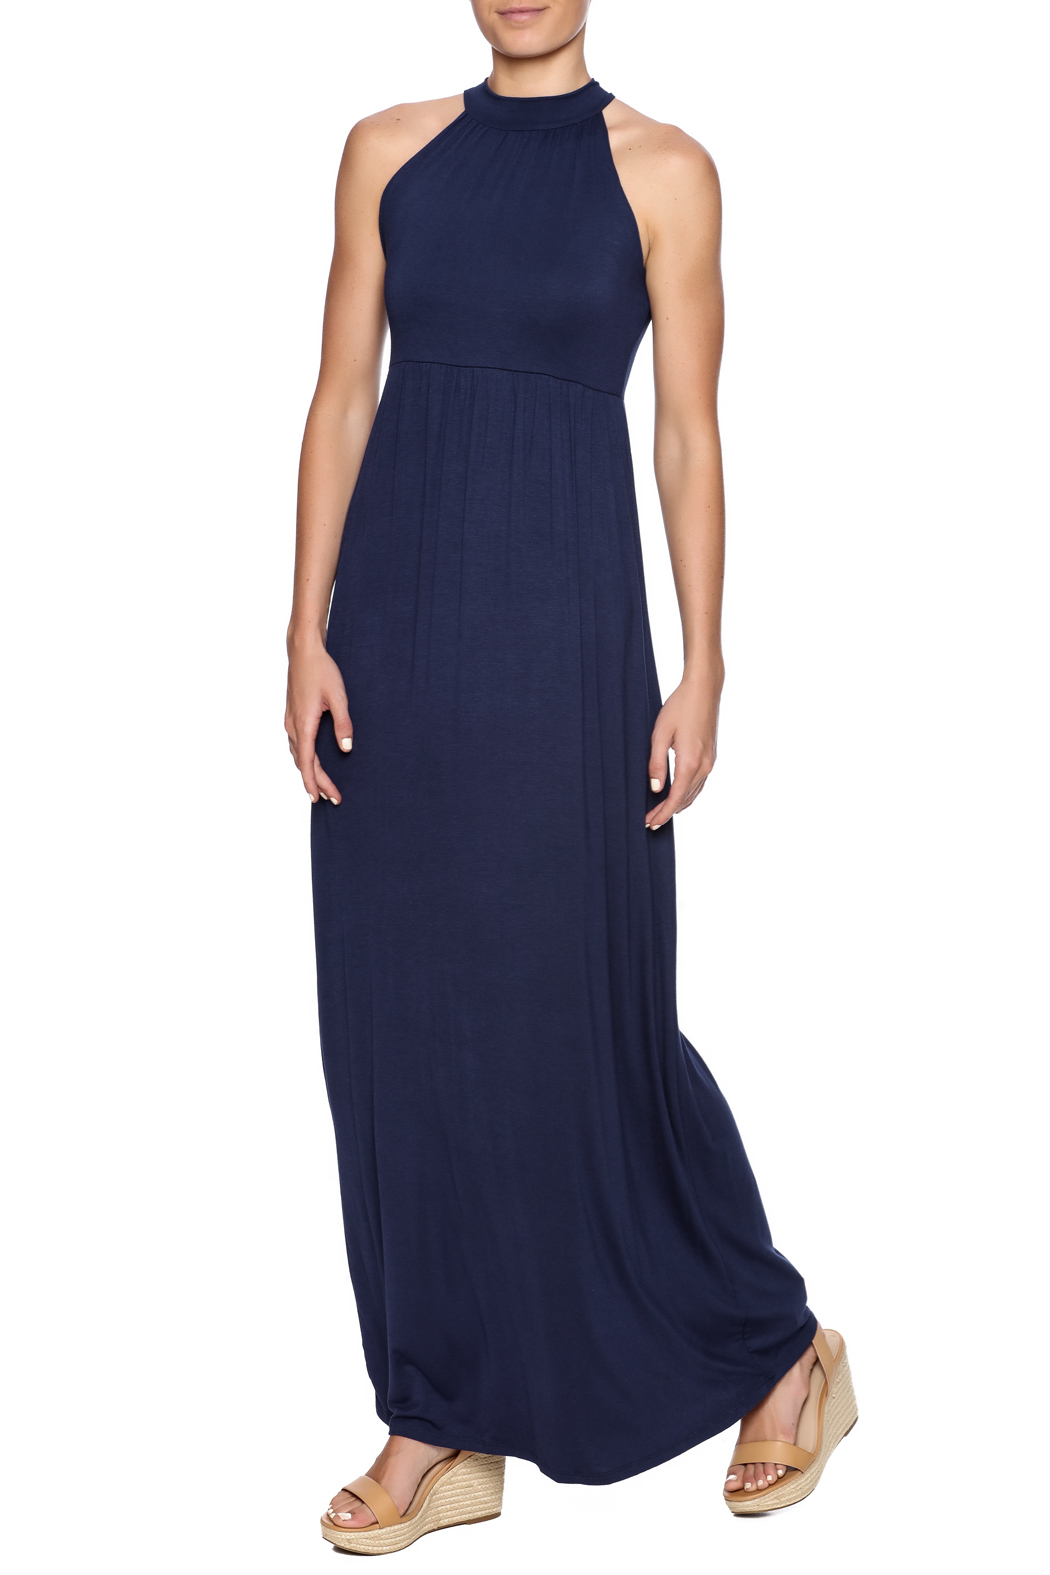 Bellamie Sophia Maxi Dress - Main Image